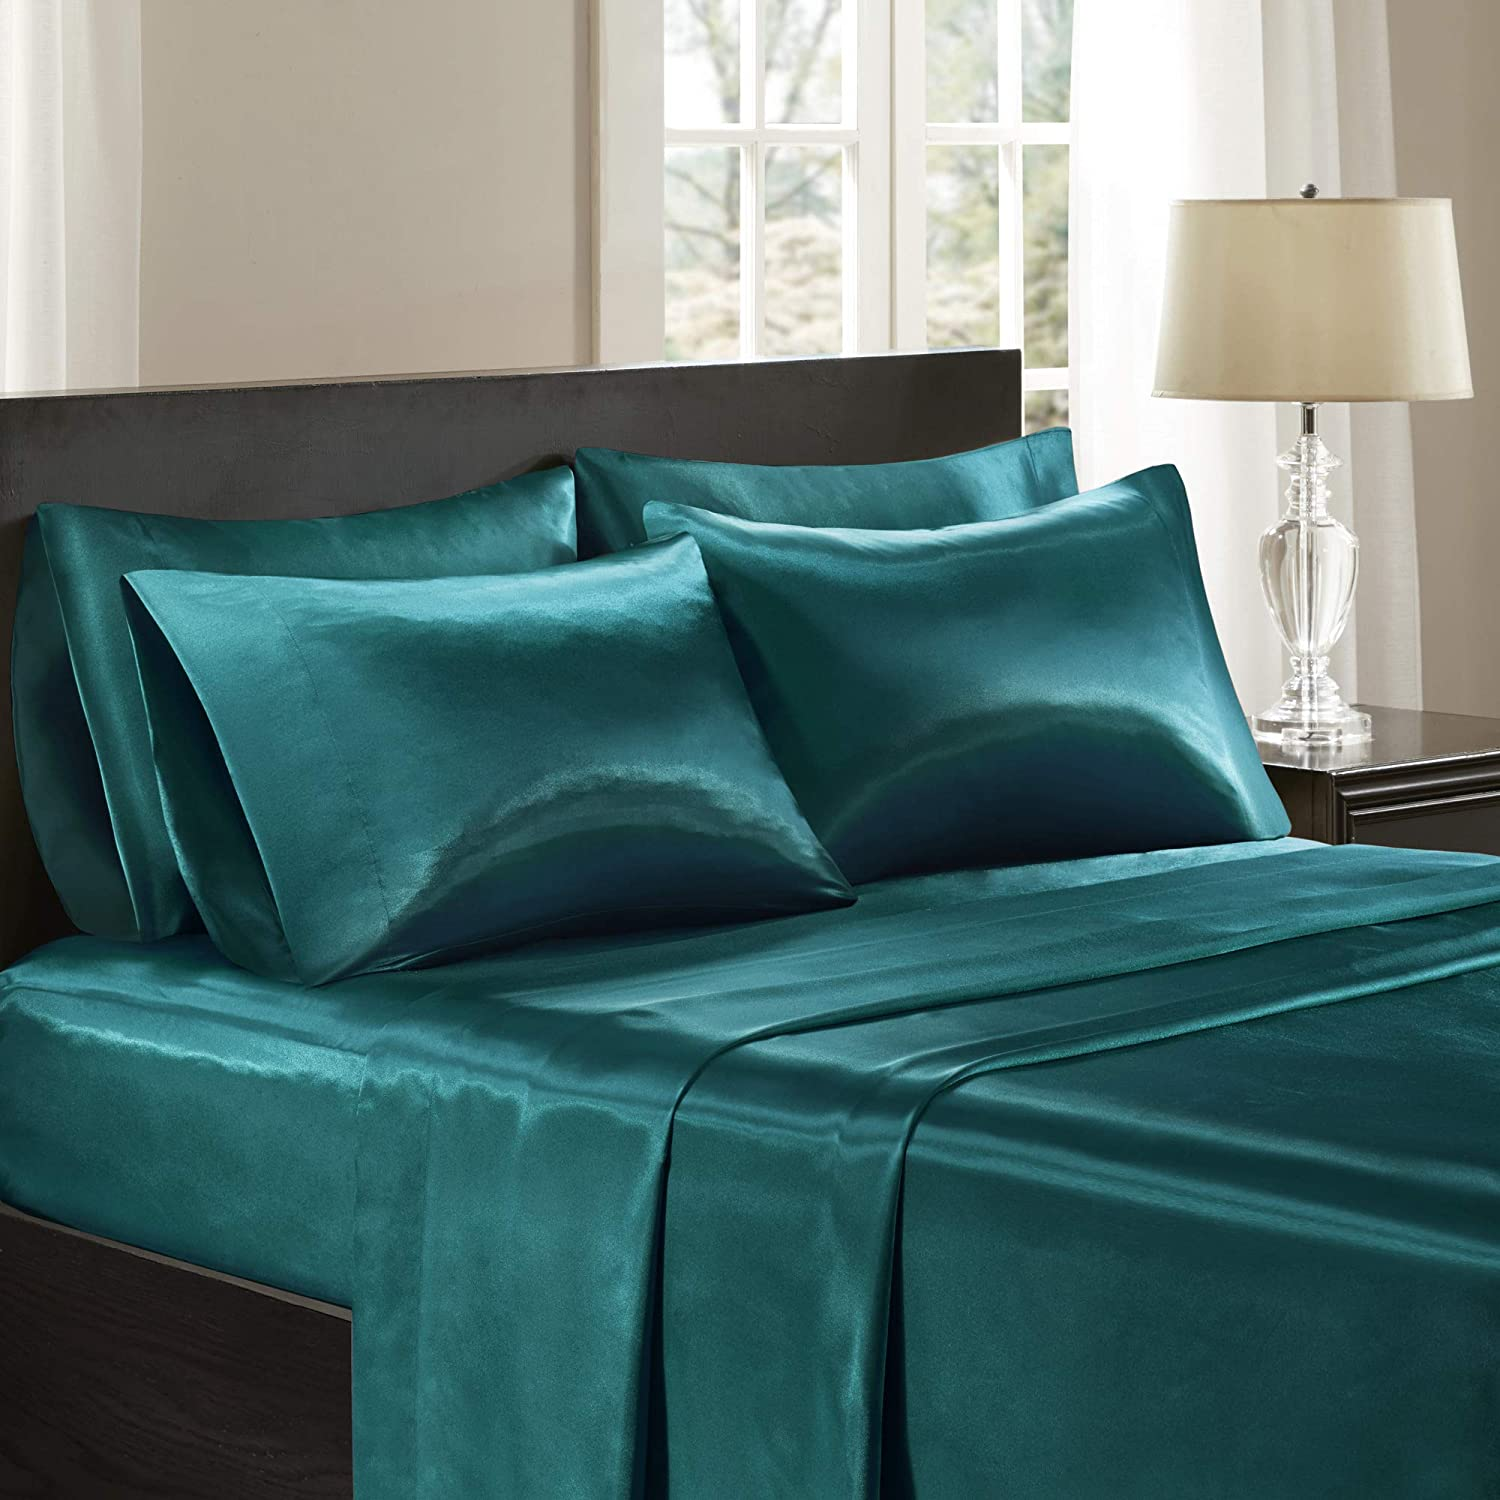 Madison Park Satin Wrinkle-Free Luxurious and Silky with 16